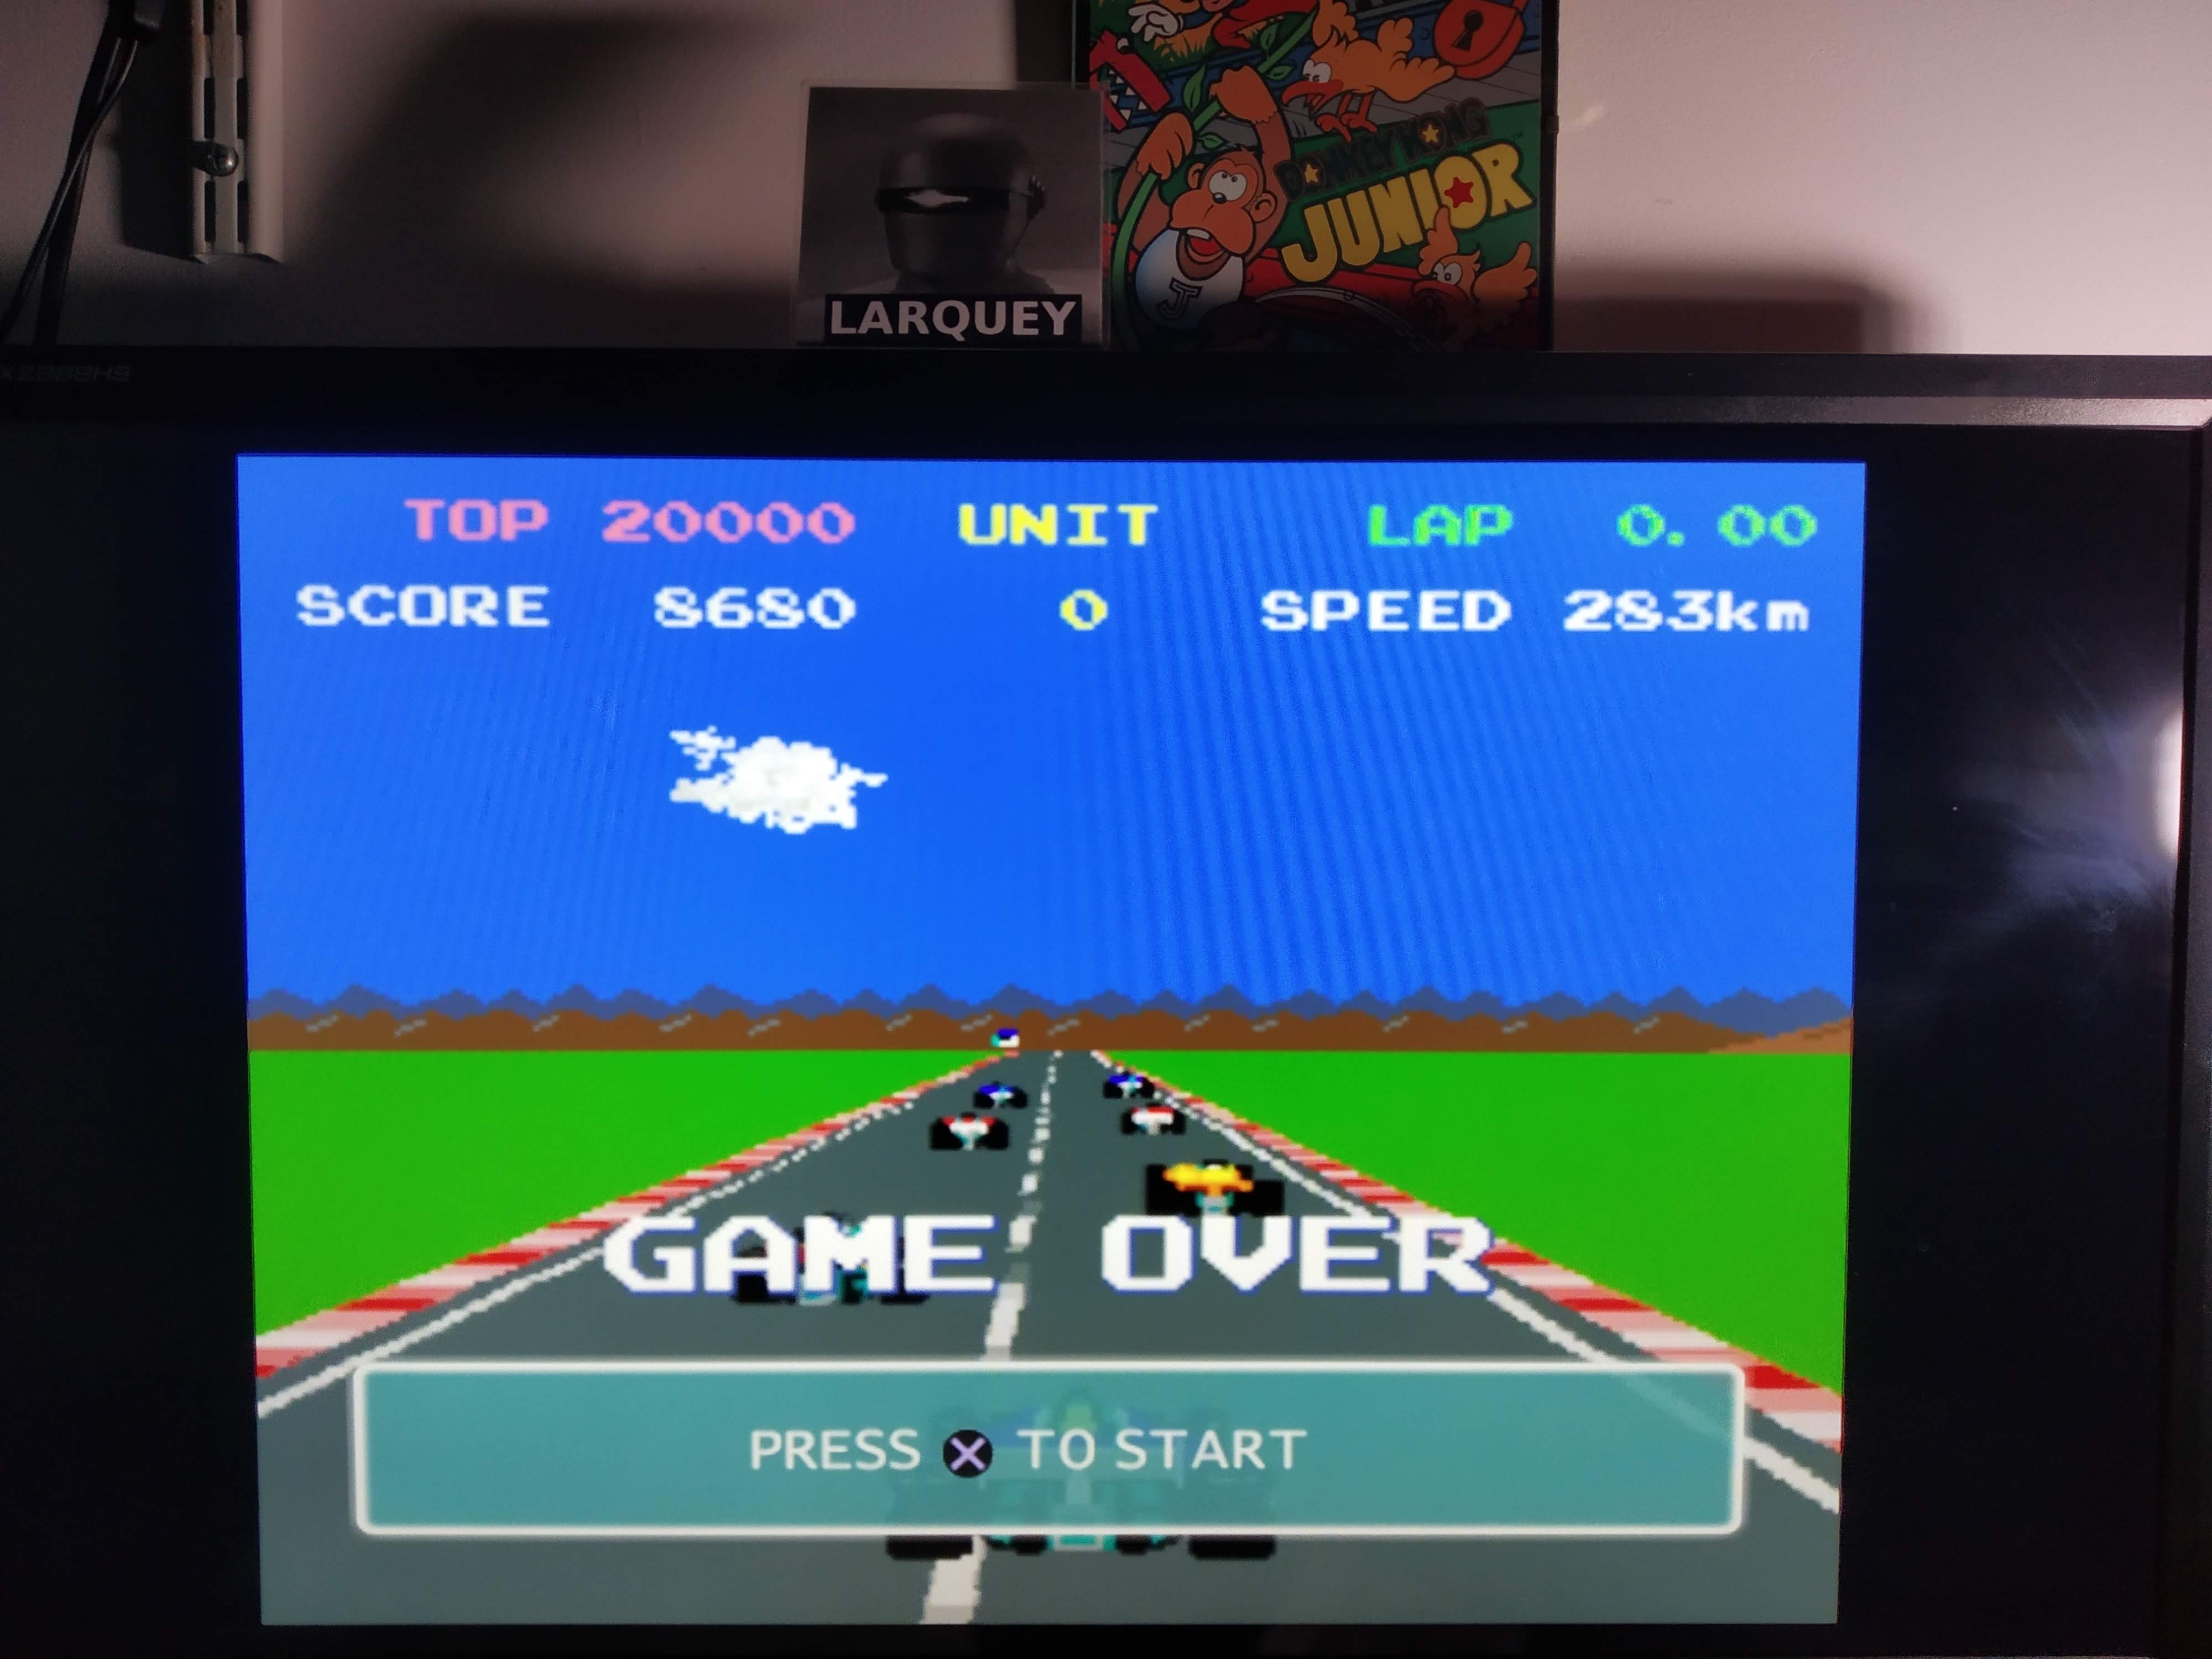 Larquey: Namco Museum 50th Anniversary: Pole Position II [Seaside Track] (Playstation 2 Emulated) 8,680 points on 2020-08-06 15:08:33